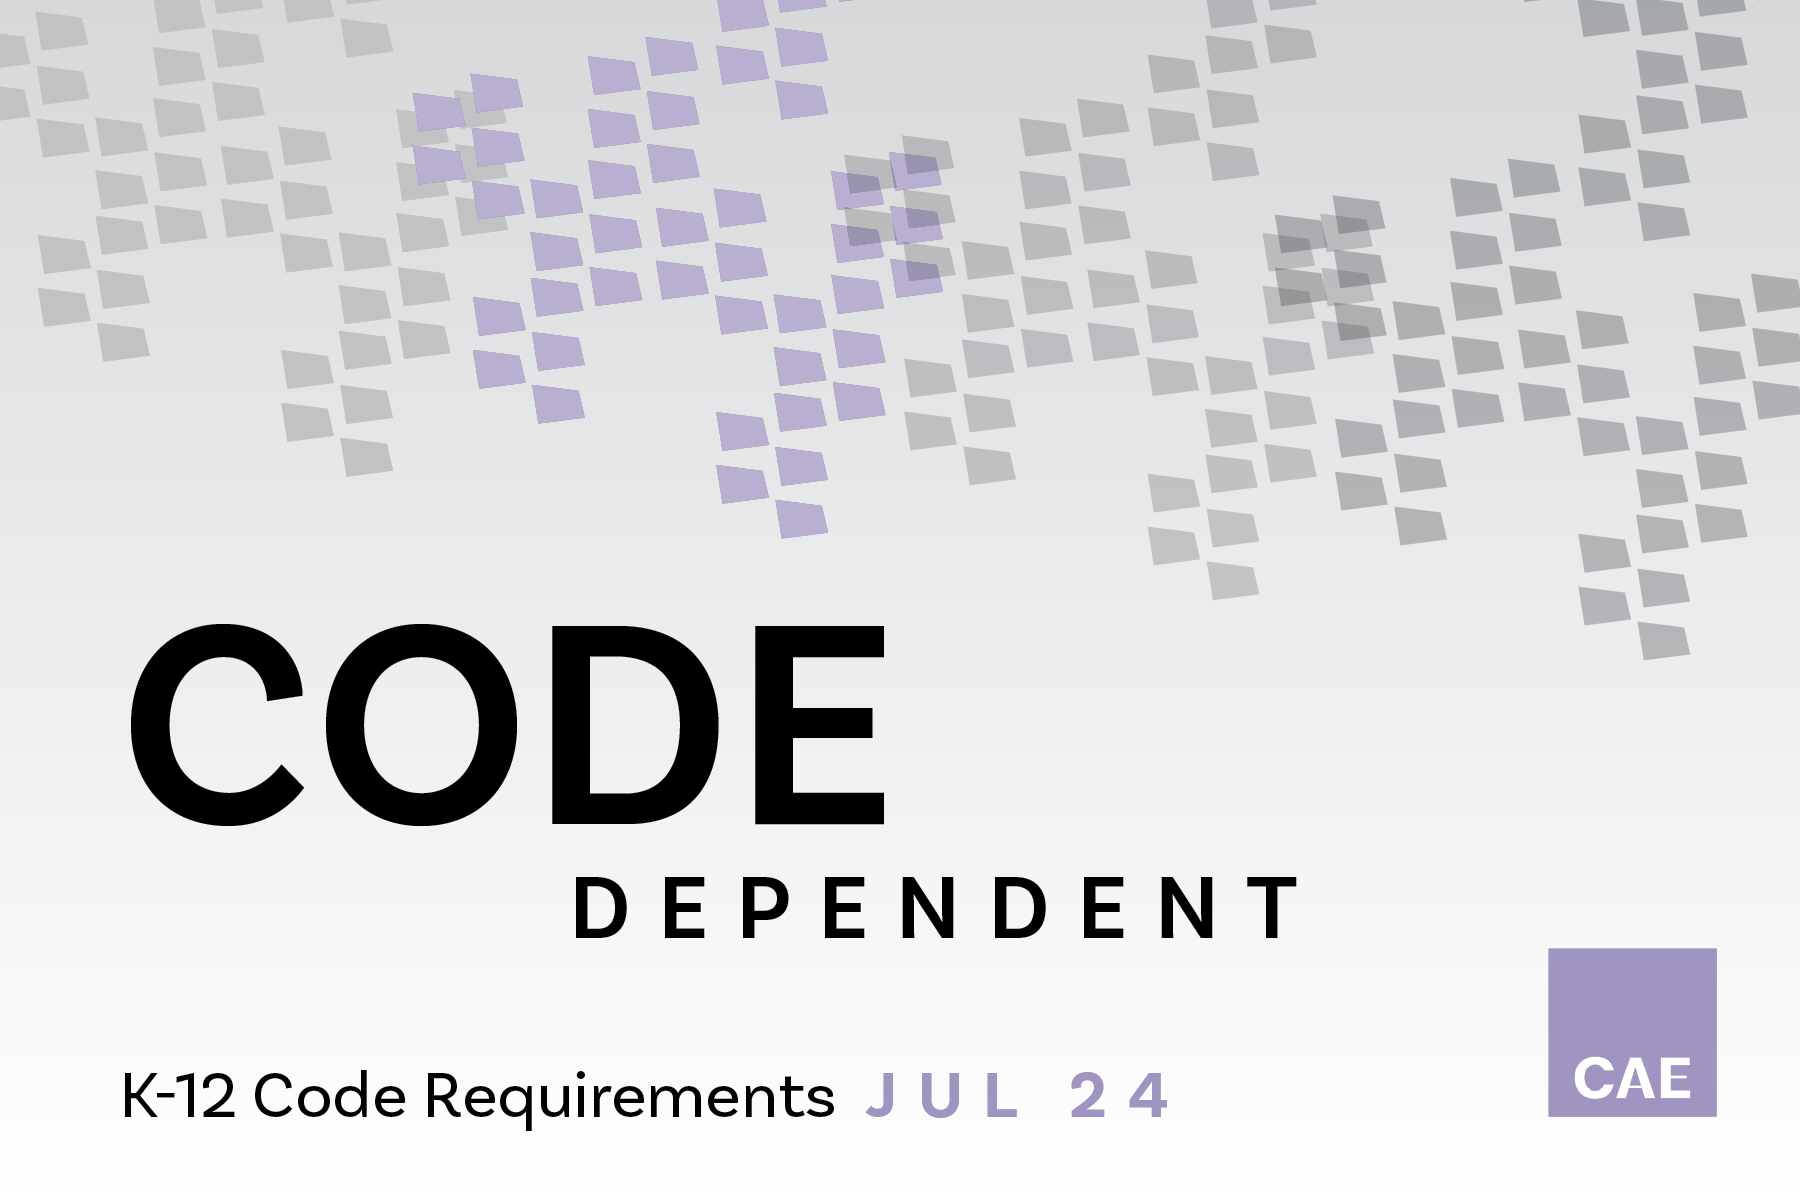 This page is intended only for participants of 2019 Code Dependent: K-12 Code Challenges & Opportunities